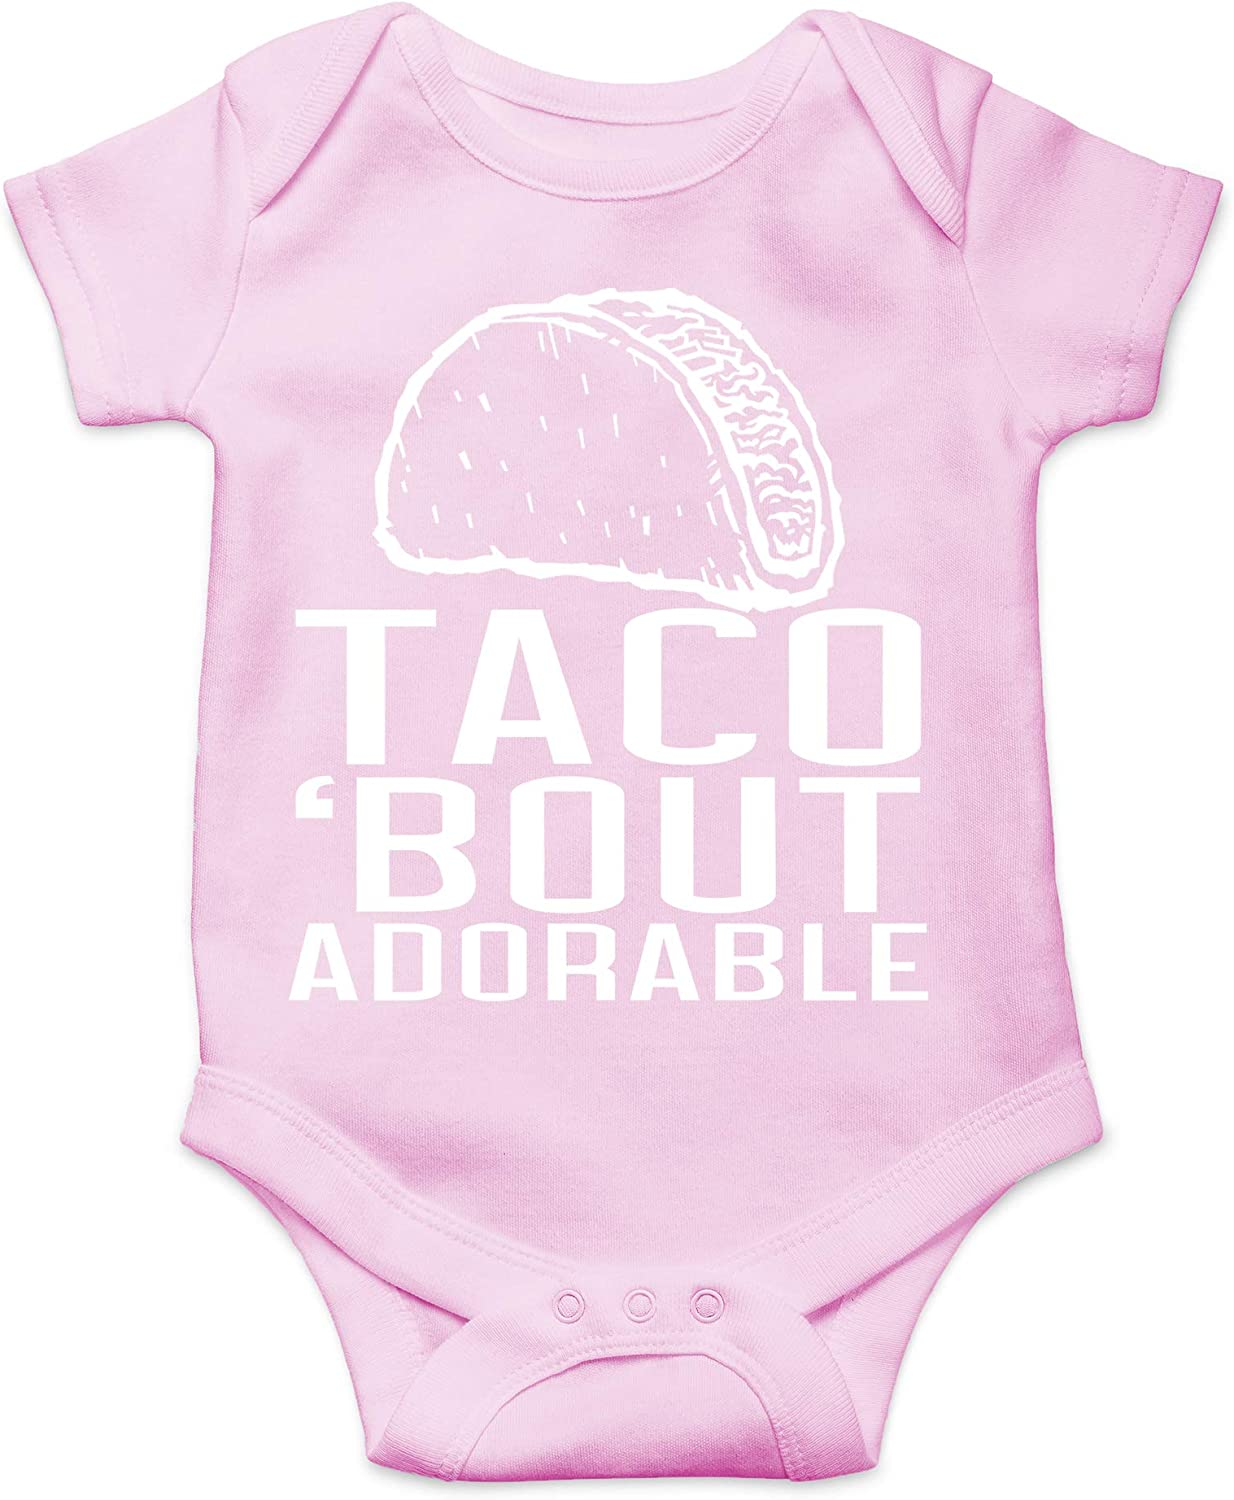 Taco Bout Adorable - Funny Mexican Food Parody Unisex Baby Cotton Bodysuit - Infant One-Piece Romper Outfit